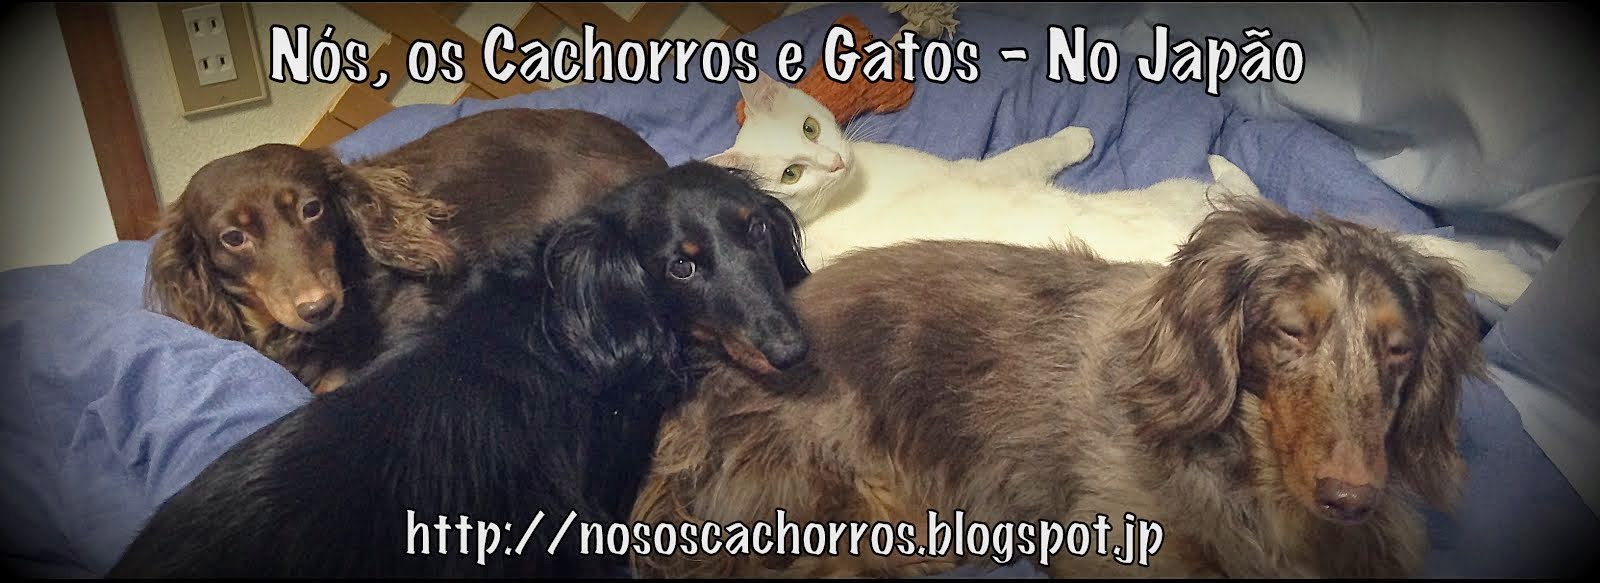 Nós, os Cachorros - No Japão